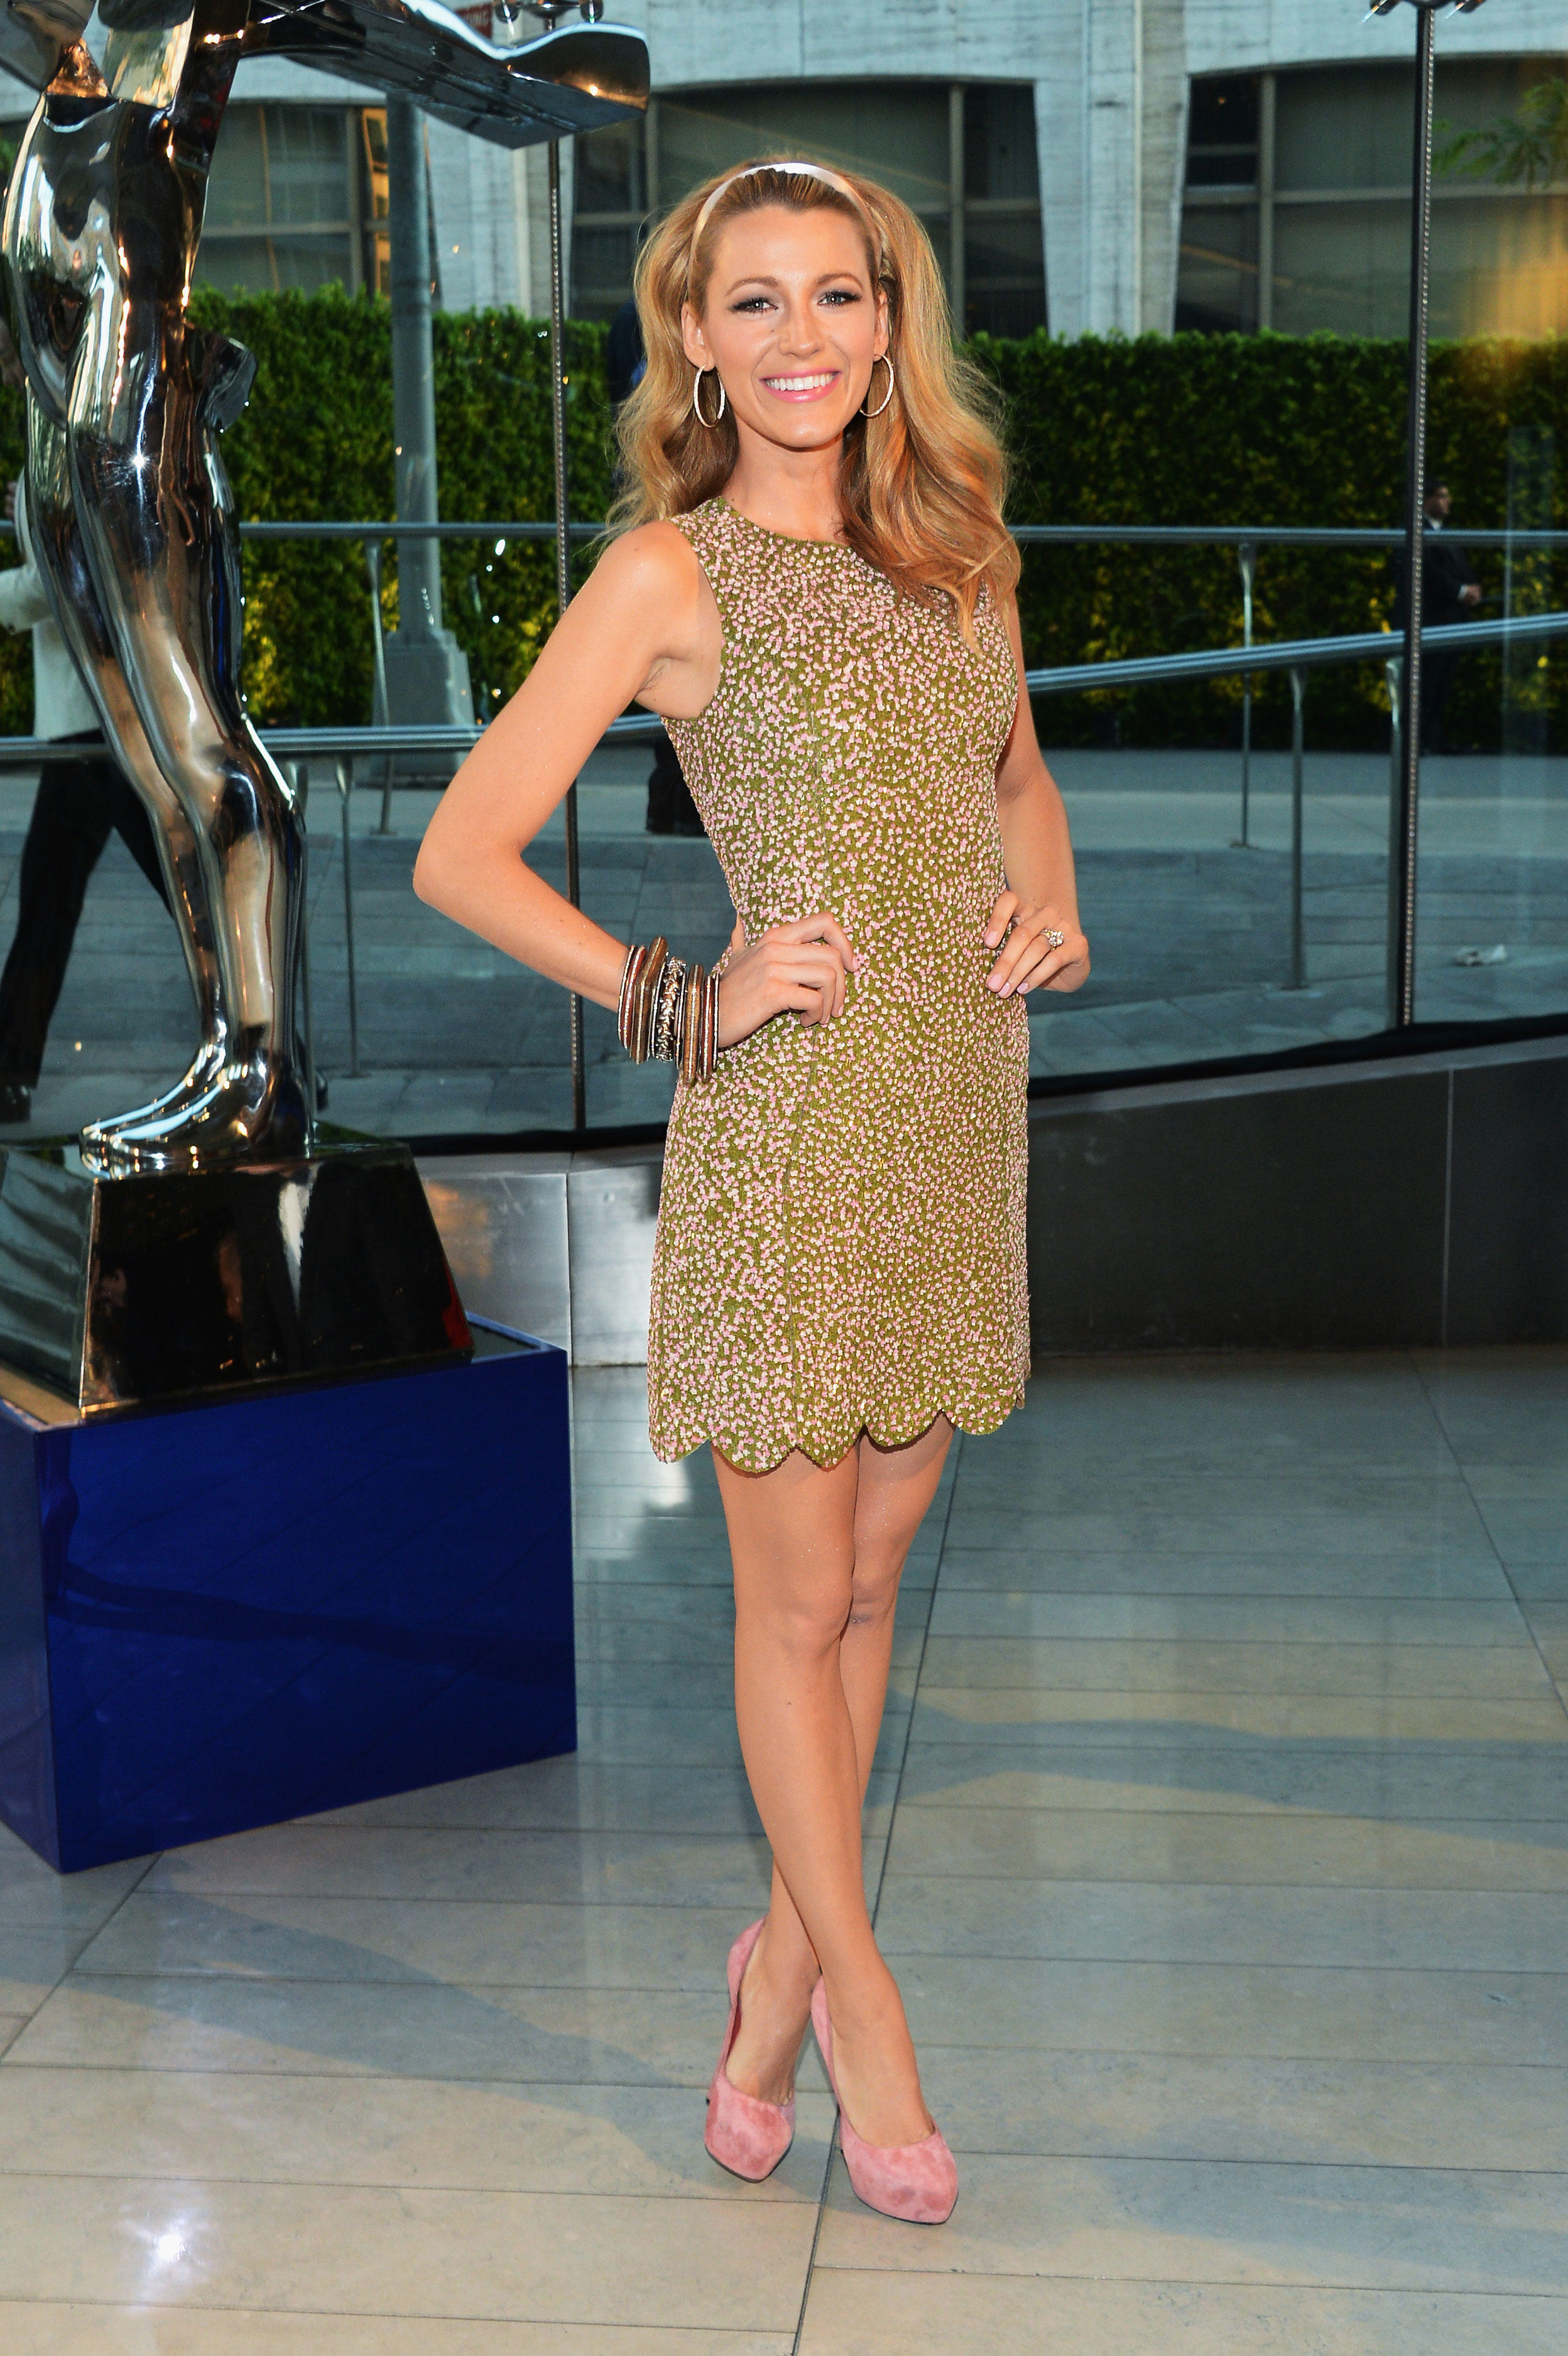 Blake Lively Pictures and Photos | Fandango